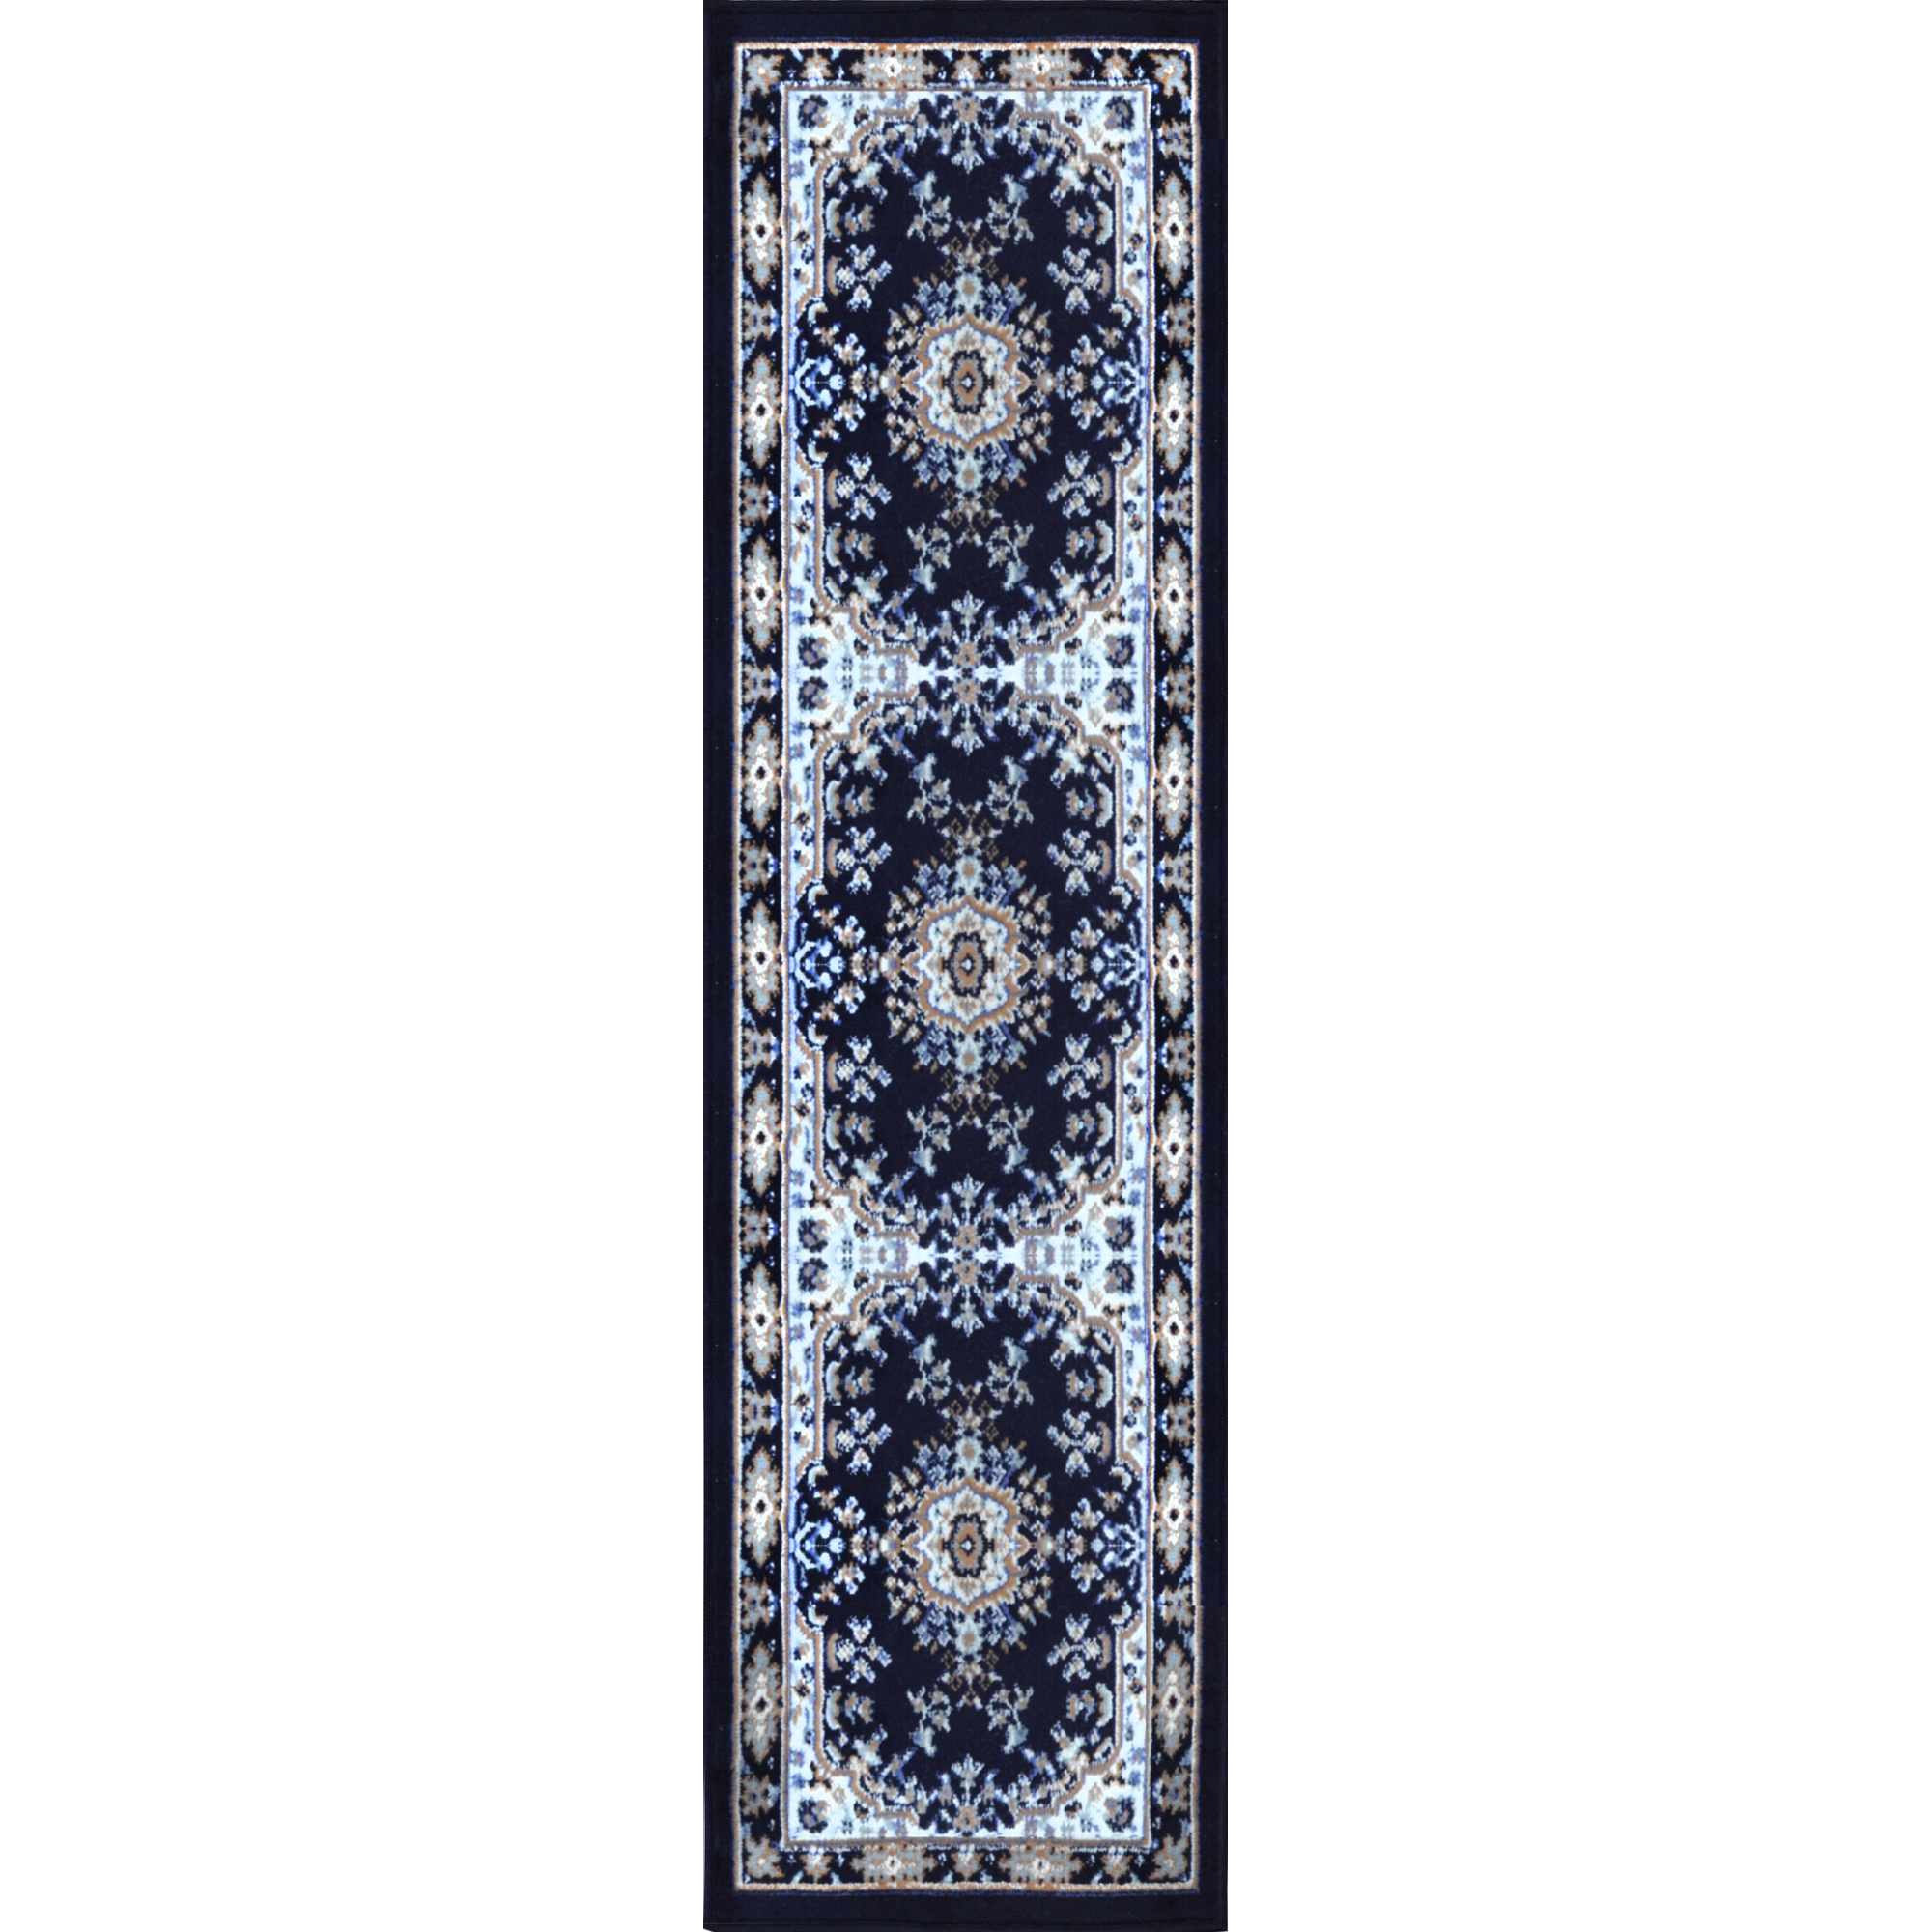 Traditional Oriental Medallion Rug 2x7 Persien Style